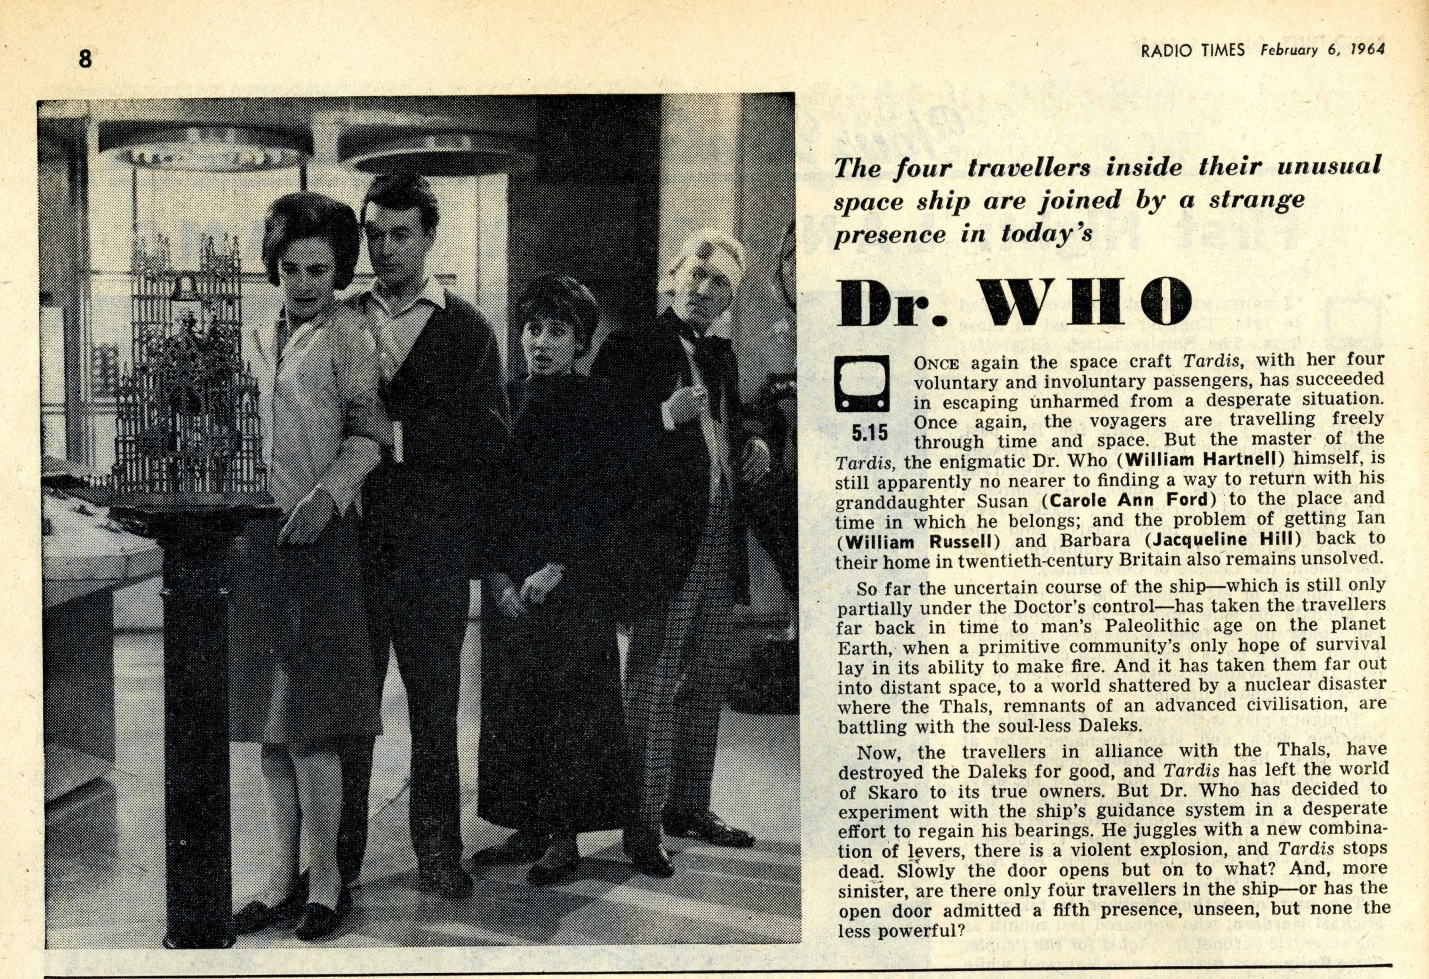 Radio Times. The Edge of Destruction article, 8-14 February 1964